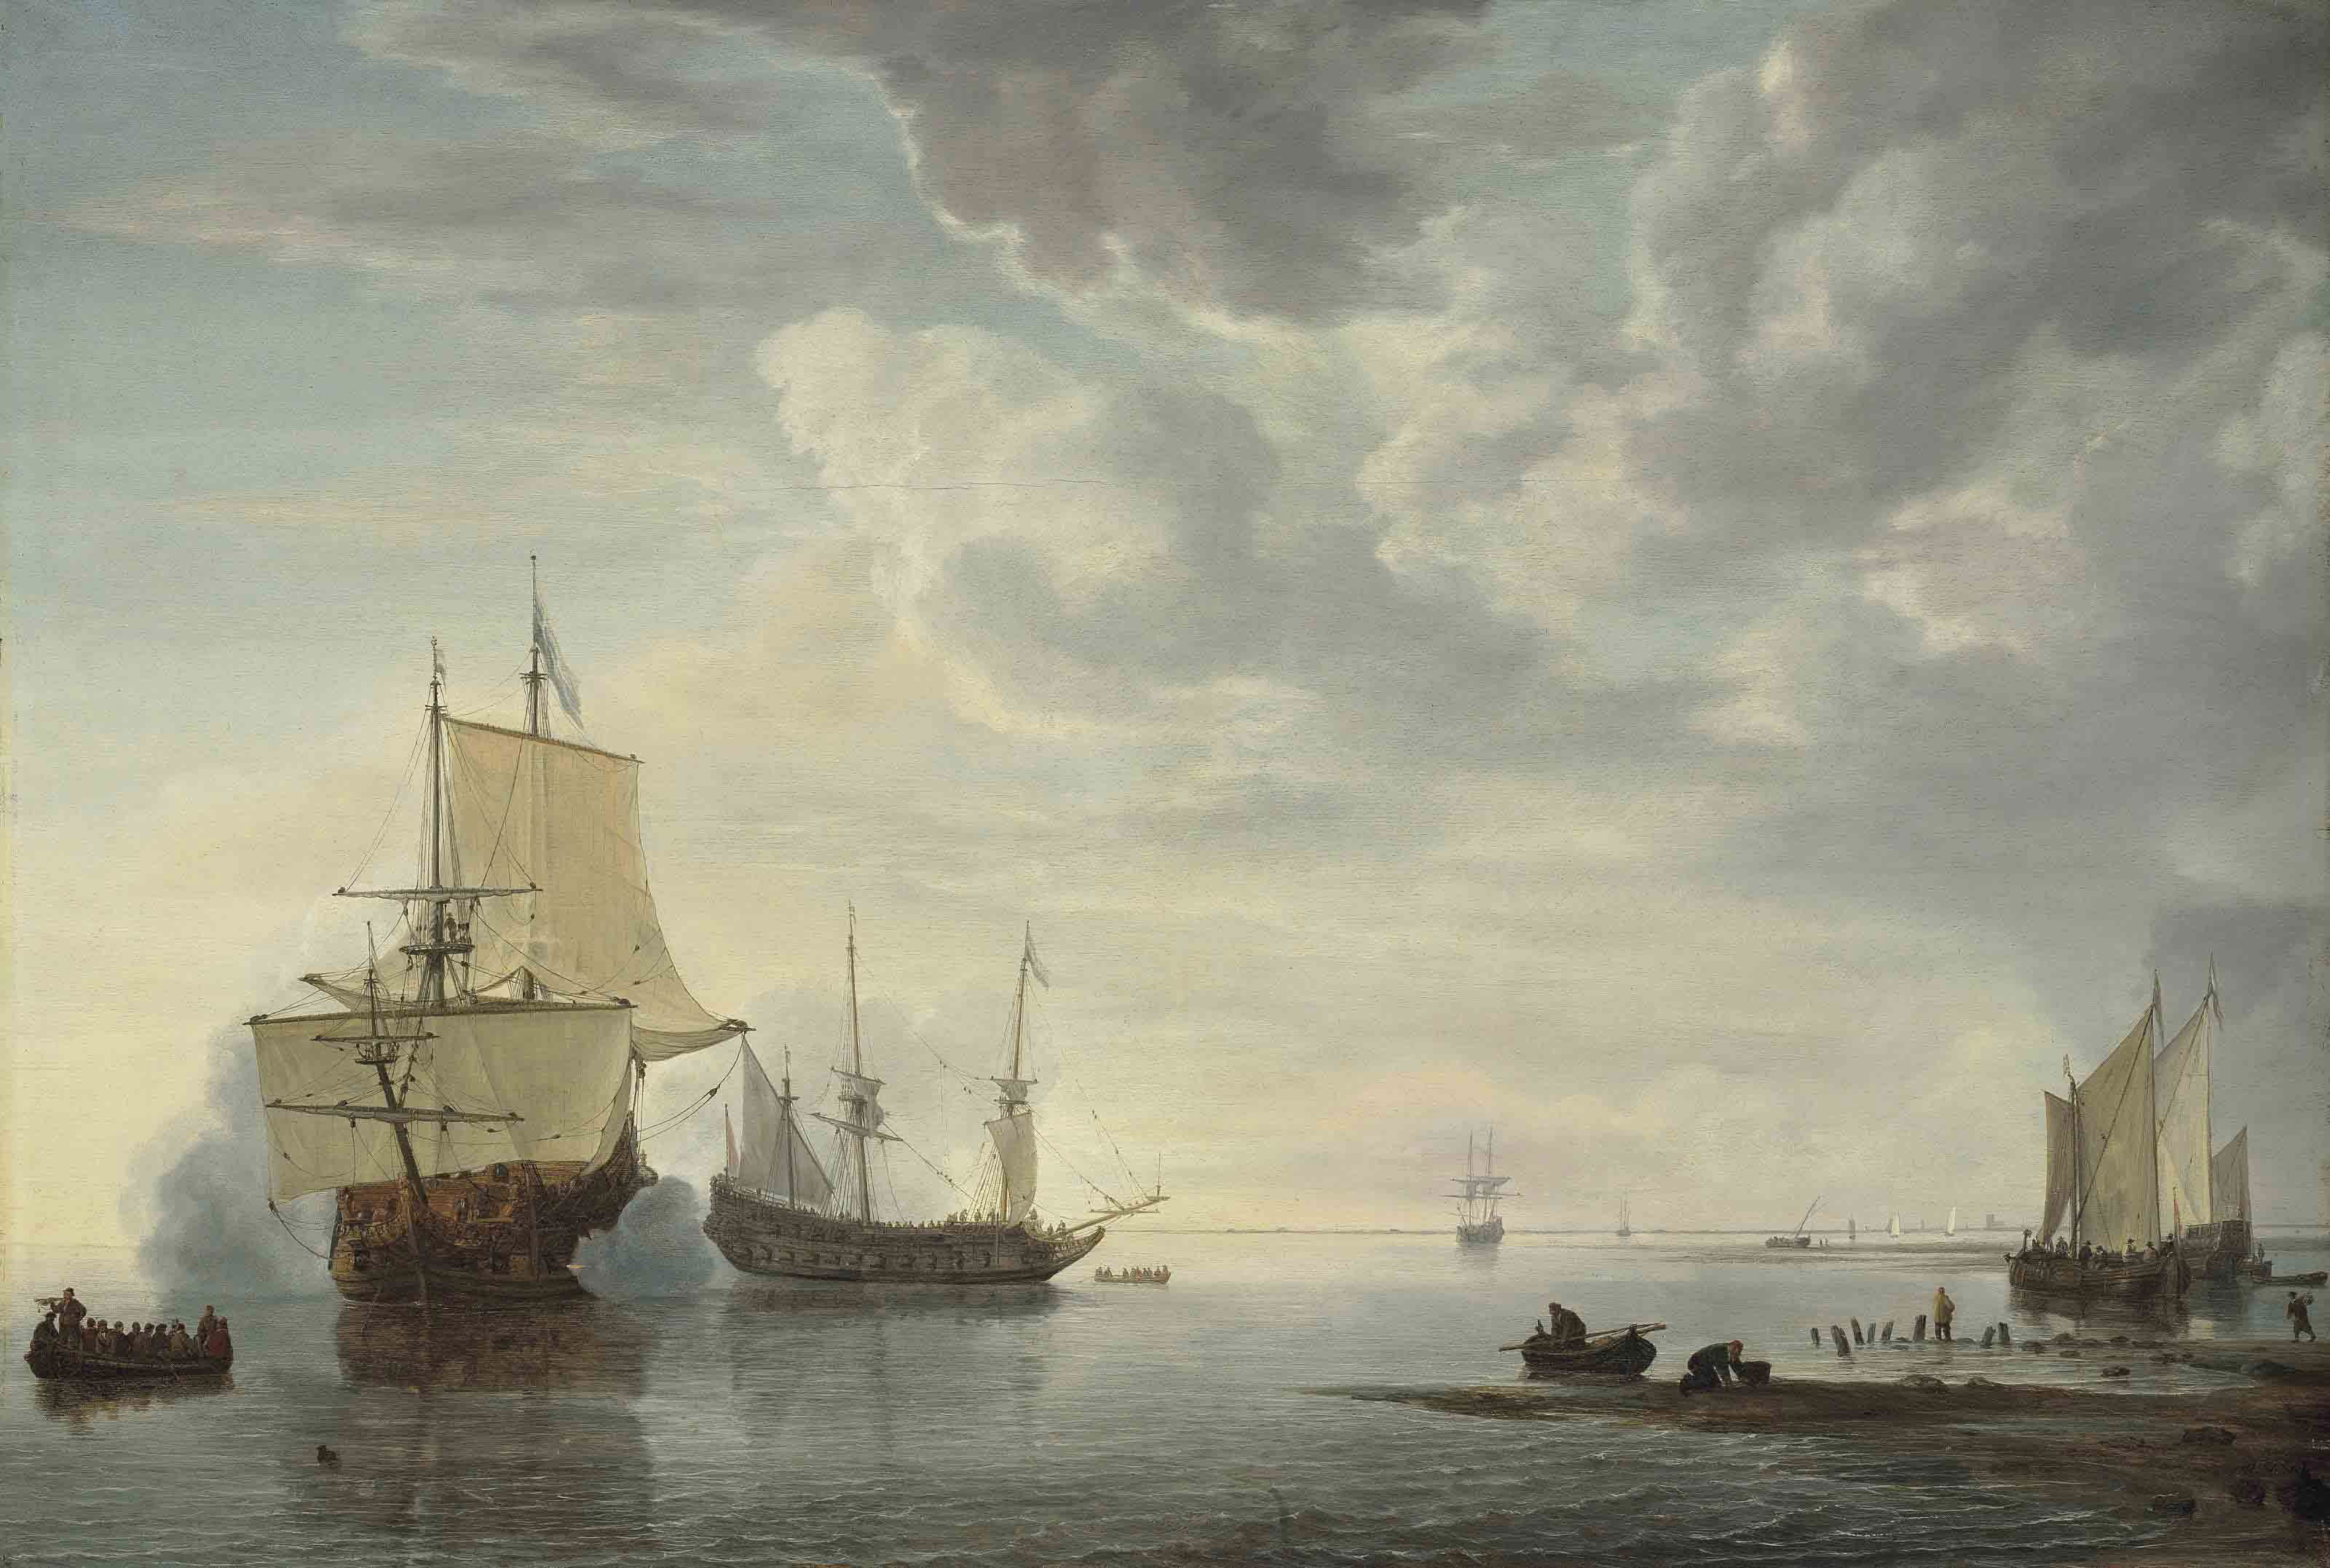 Dutch frigates exchanging salutes in a calm, with yachts, a rowing boat, a sloop carrying personnel, and fishermen on the shore